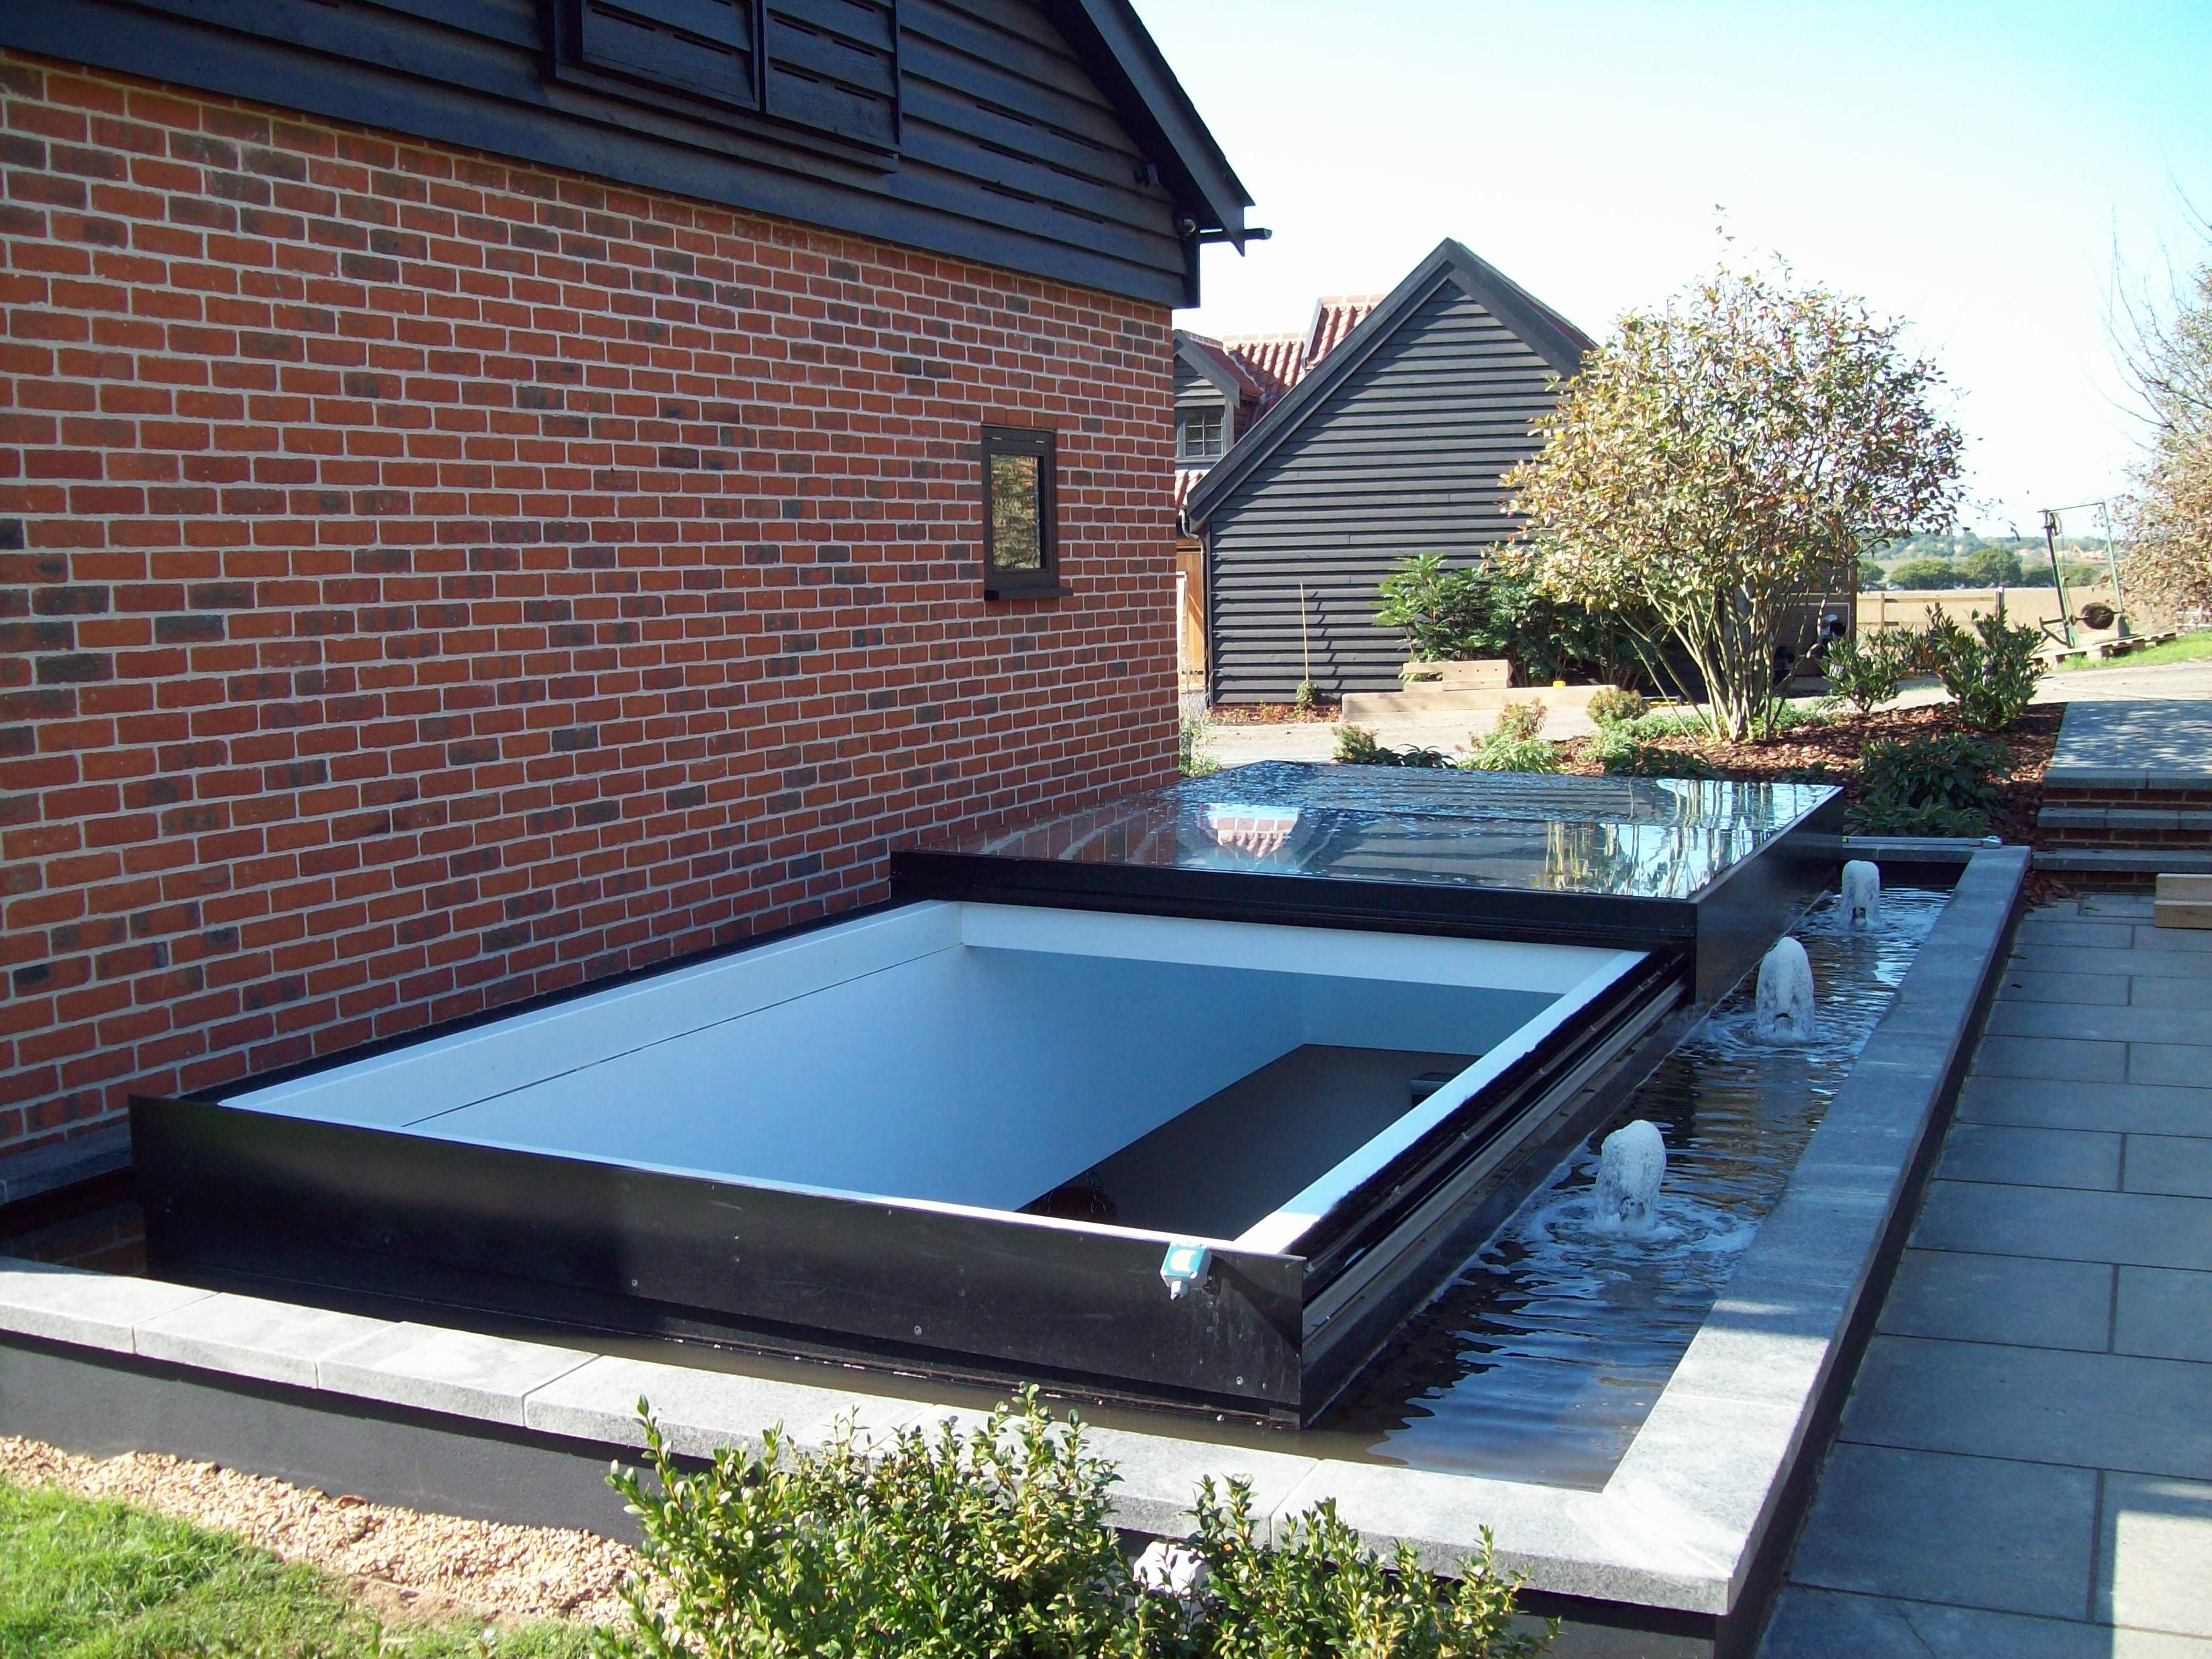 Sliding Roof Hatch Skylight Roof Light Glass House